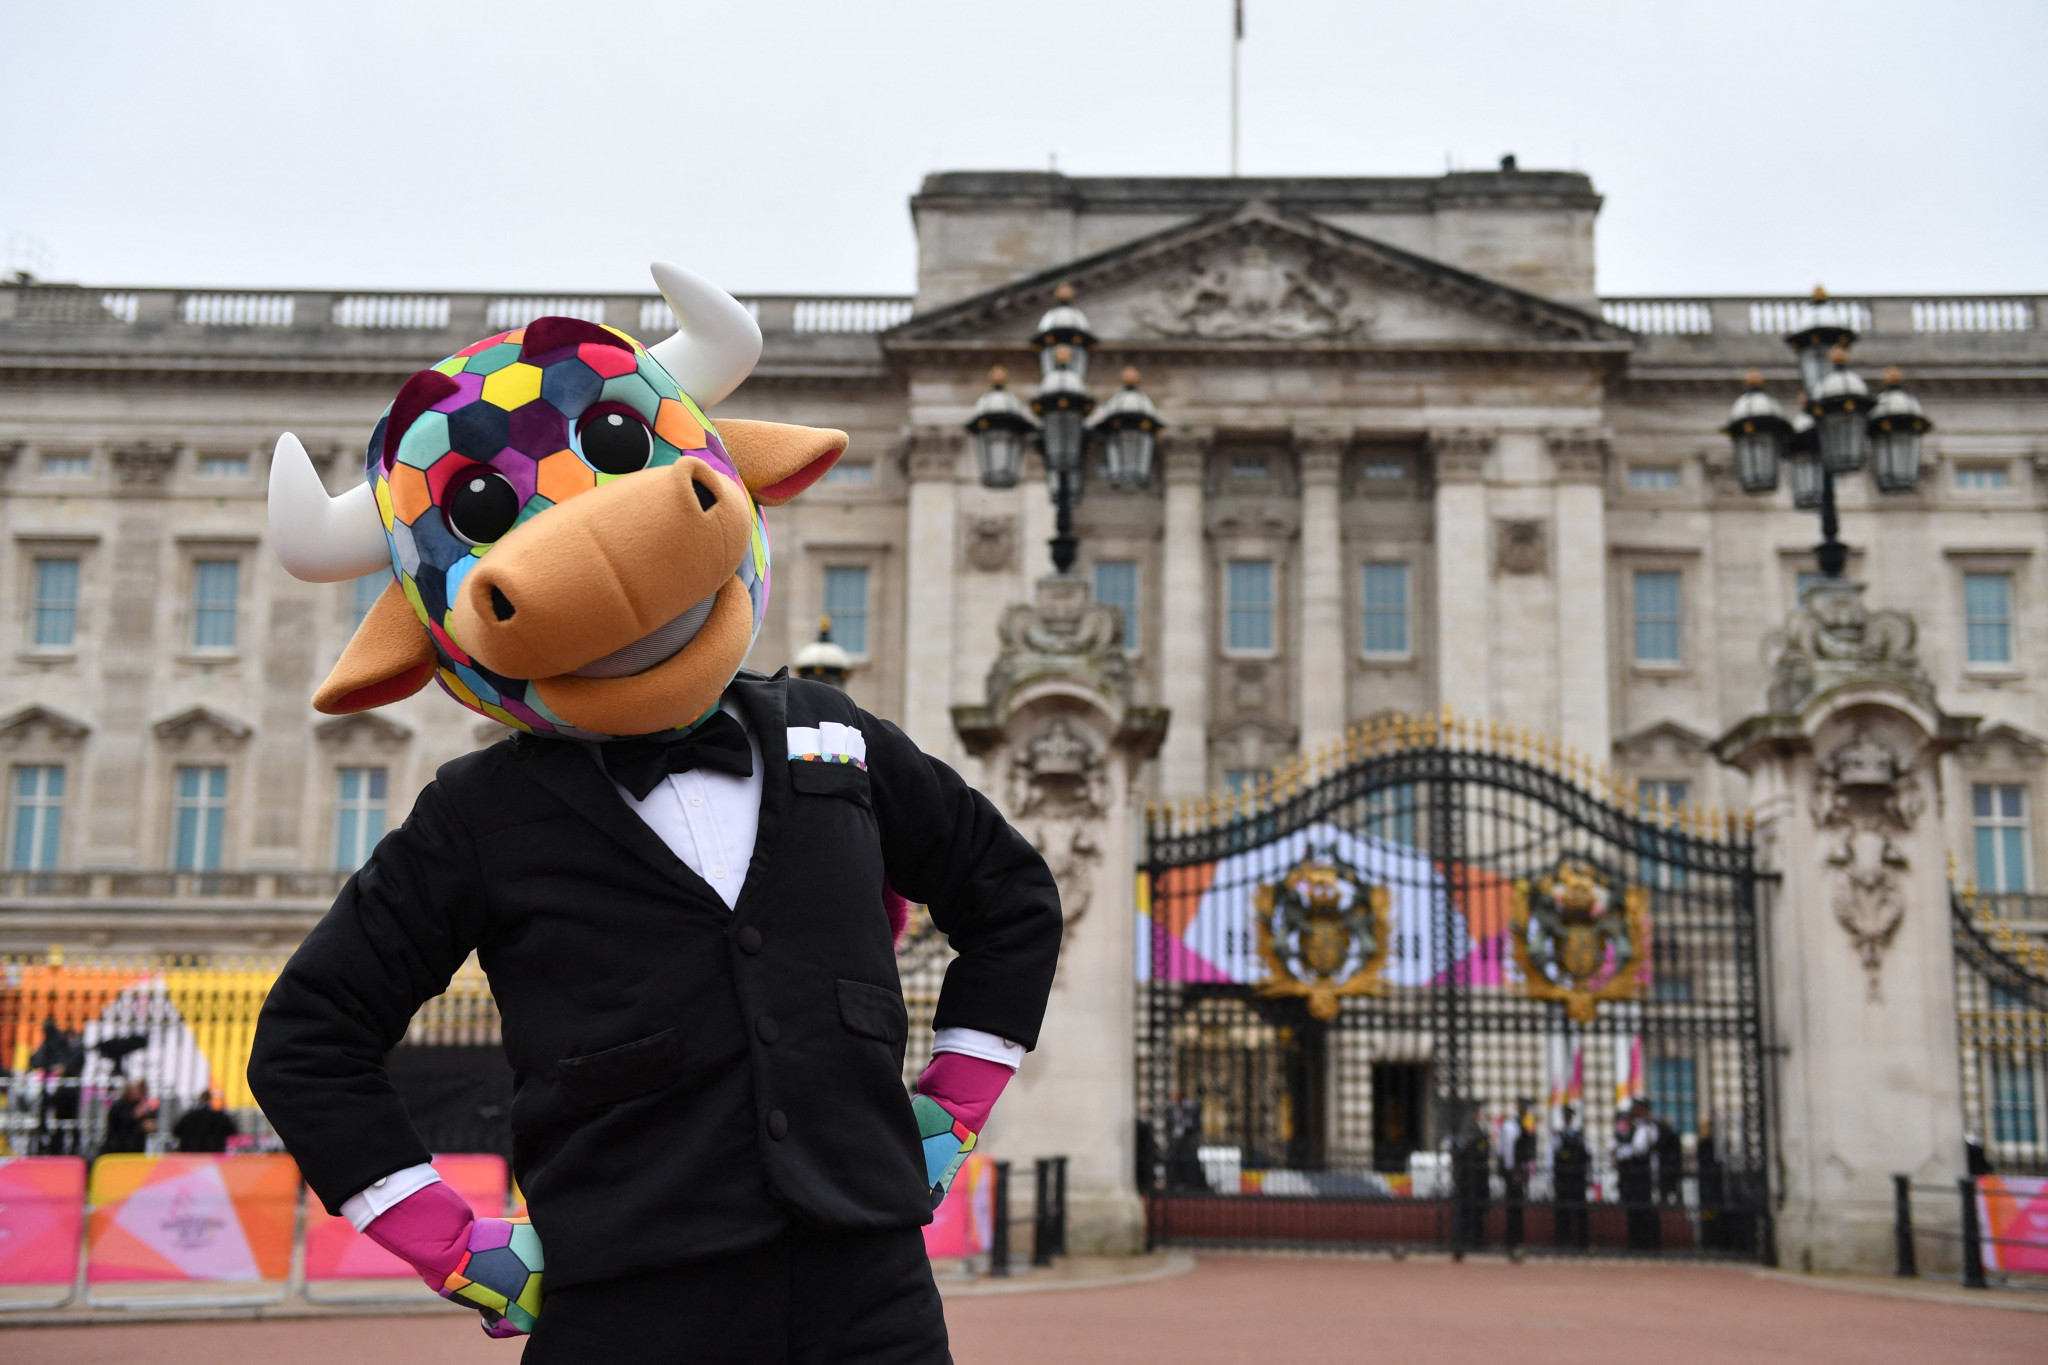 Birmingham 2022 mascot Perry was among the interested spectators at Buckingham Palace ©Getty Images